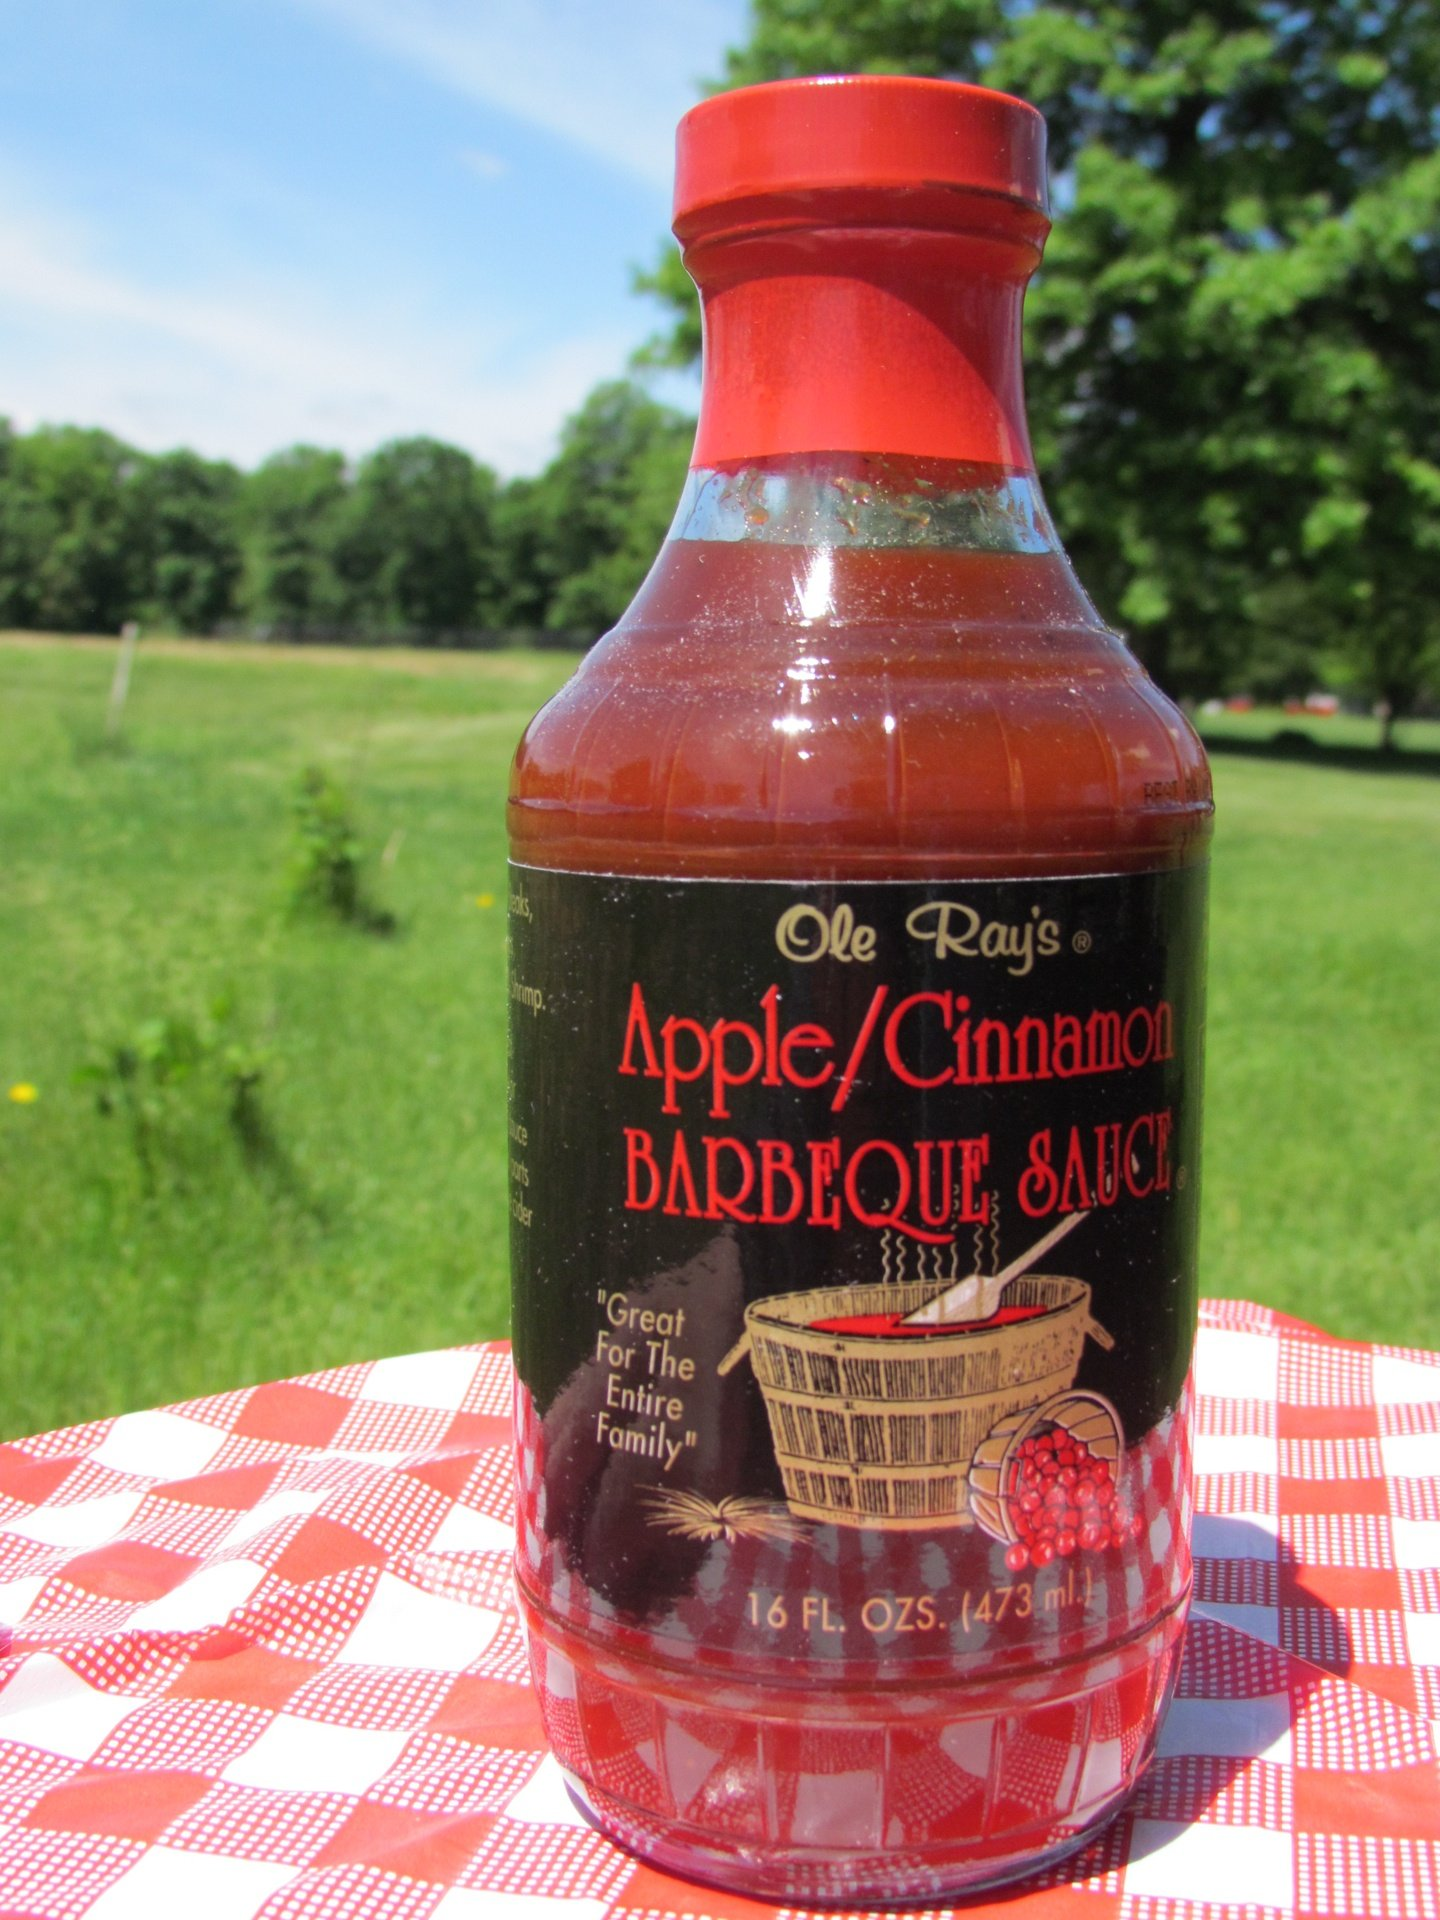 Ole Ray's Apple/Cinnamon Barbecue Sauce (2 Pack of 16 Oz. Bottles)